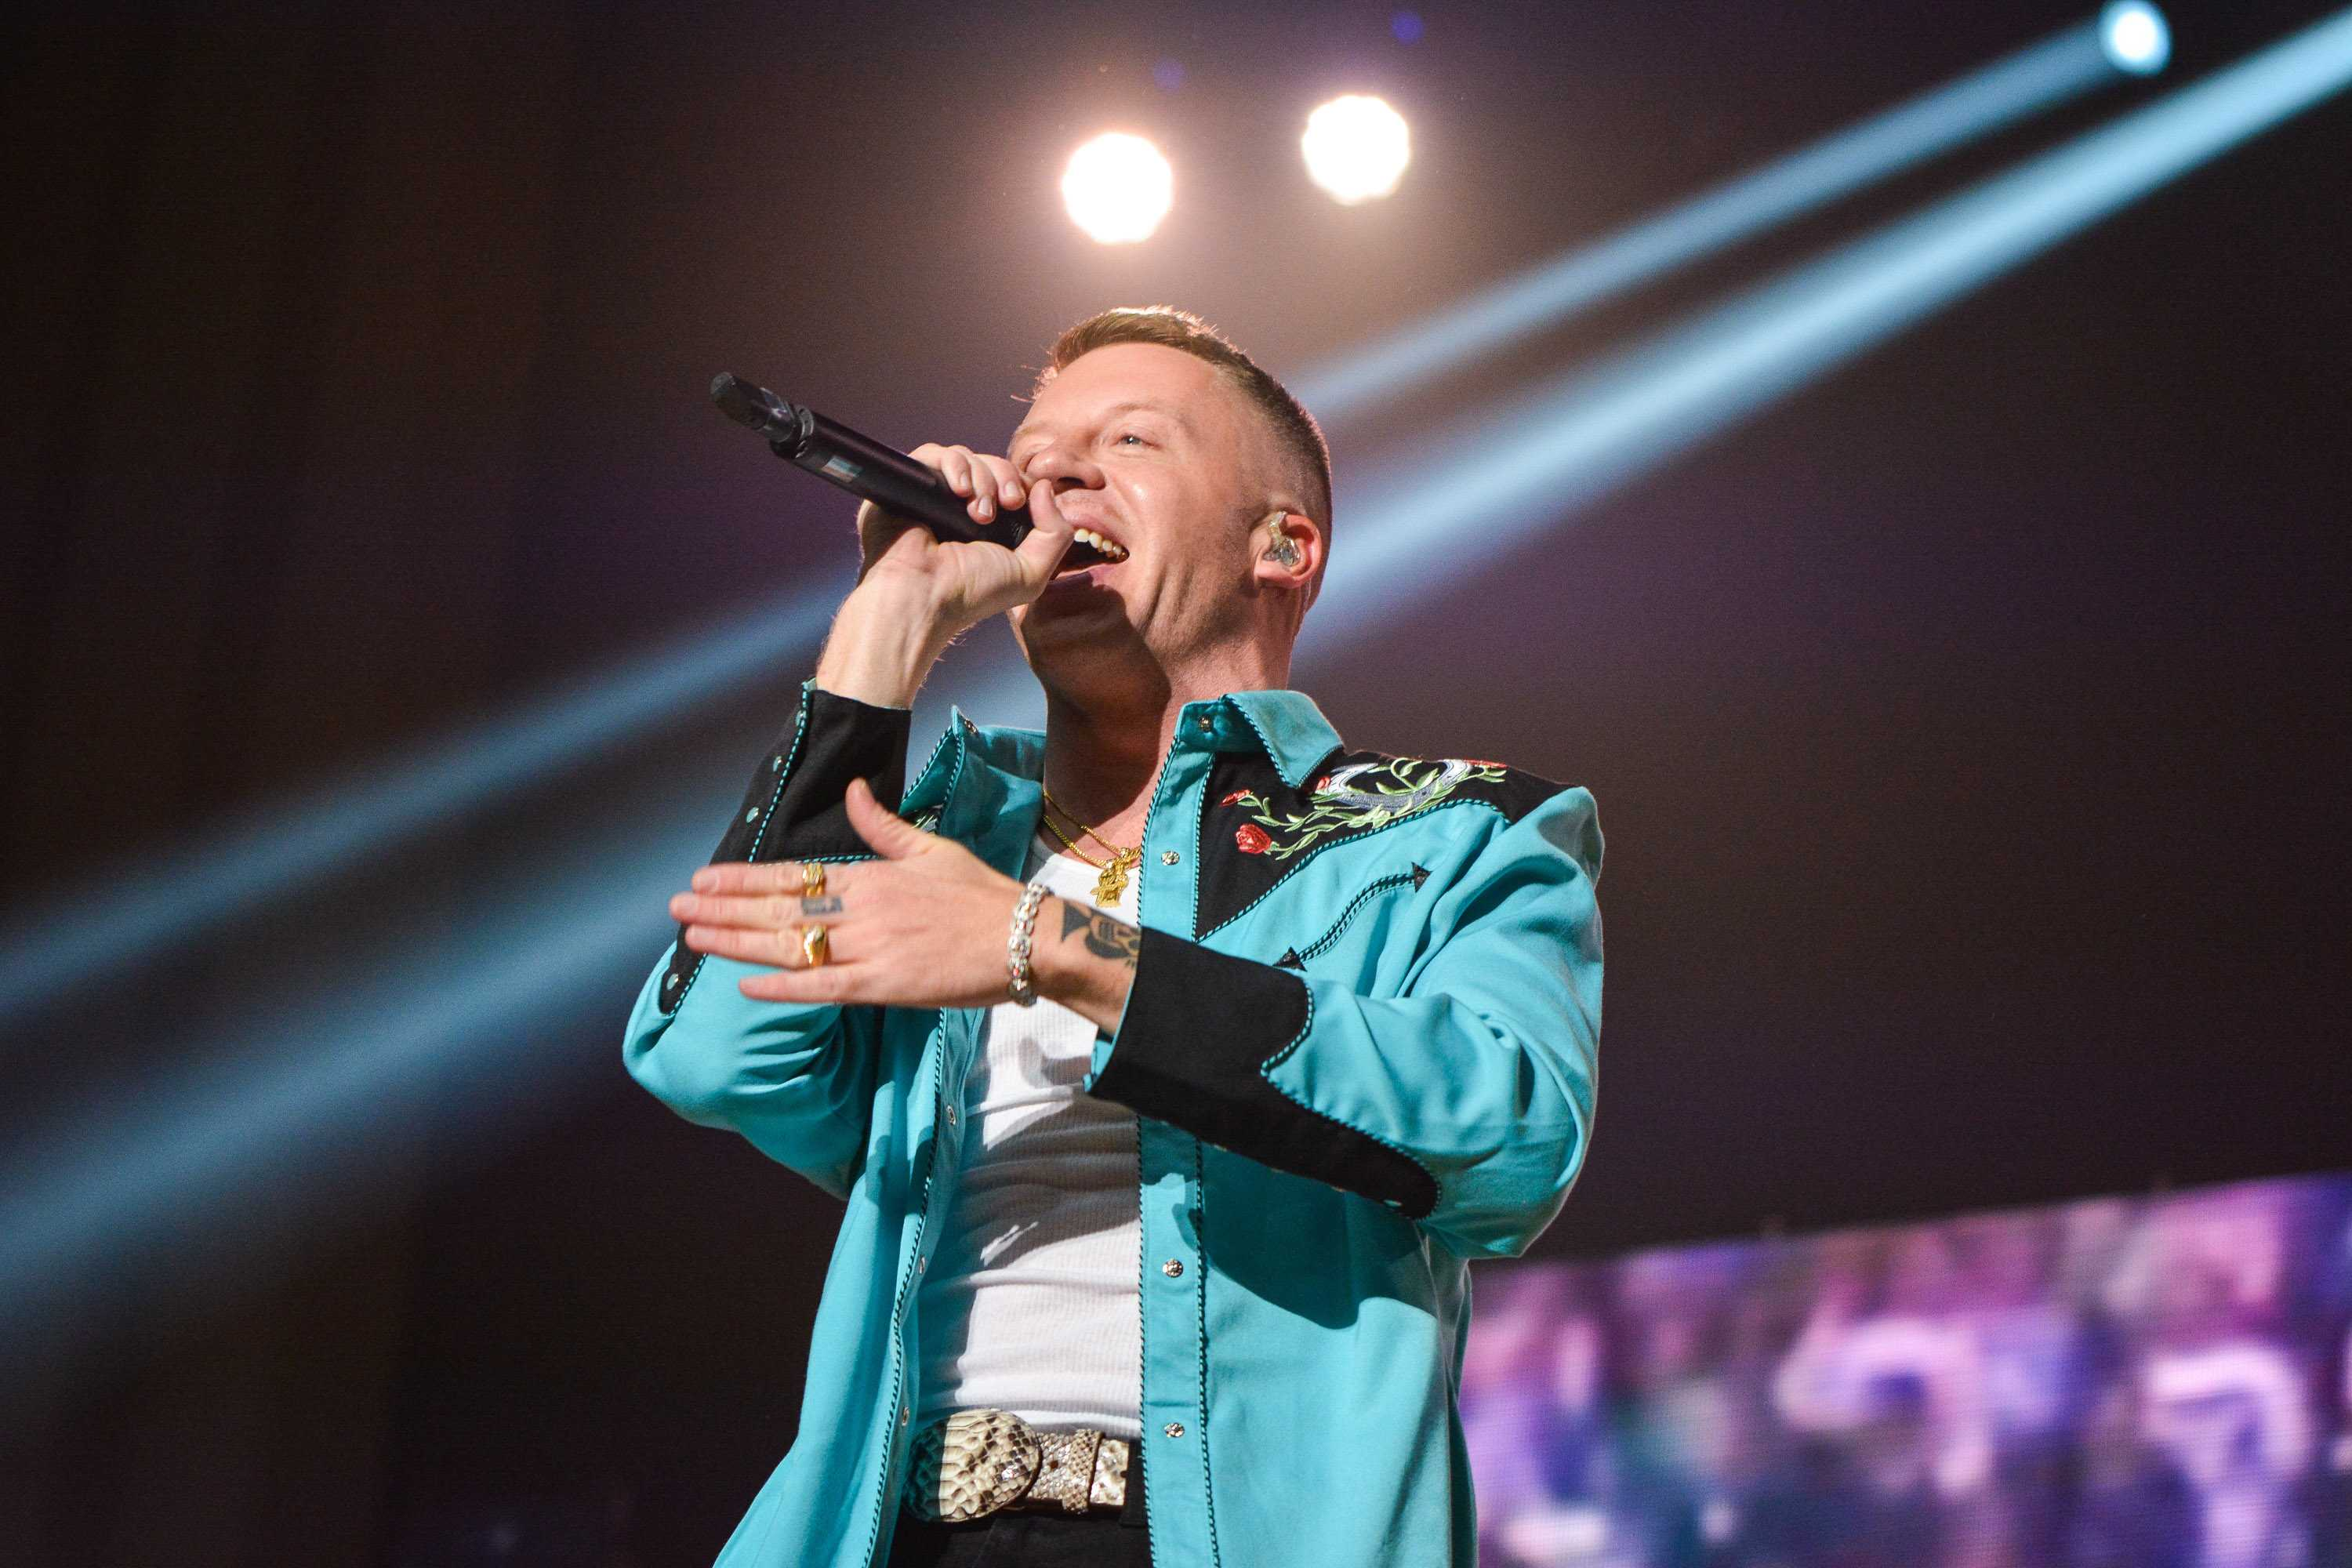 IN PHOTOS: Macklemore's Gemini Tour comes to Nashville